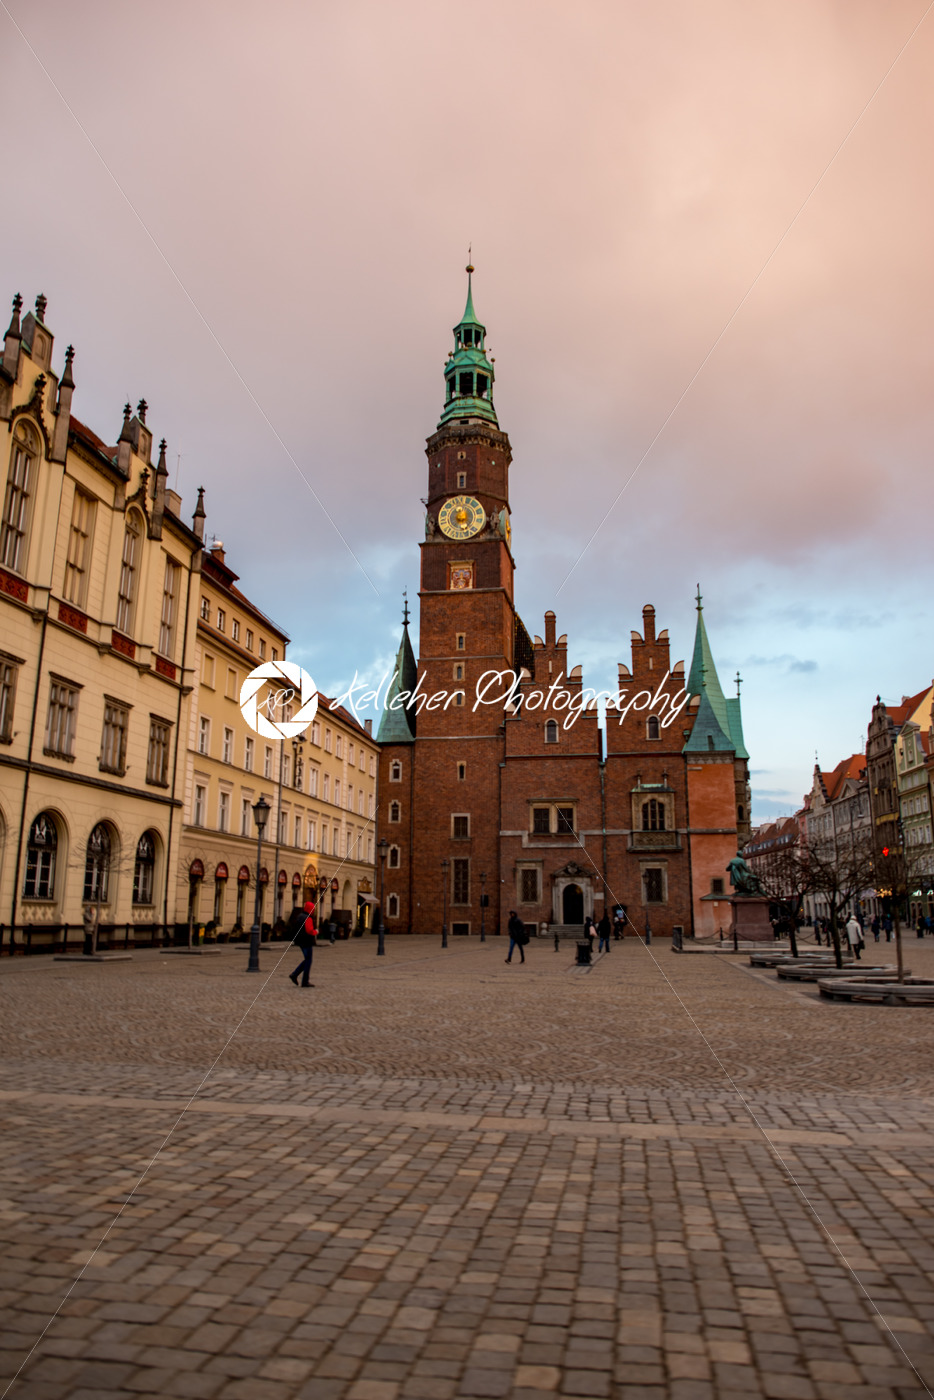 Wroclaw, Poland – March 8, 2018: Wroclaw Town Hall clock tower in evening in historic capital of Silesia, Poland, Europe. - Kelleher Photography Store